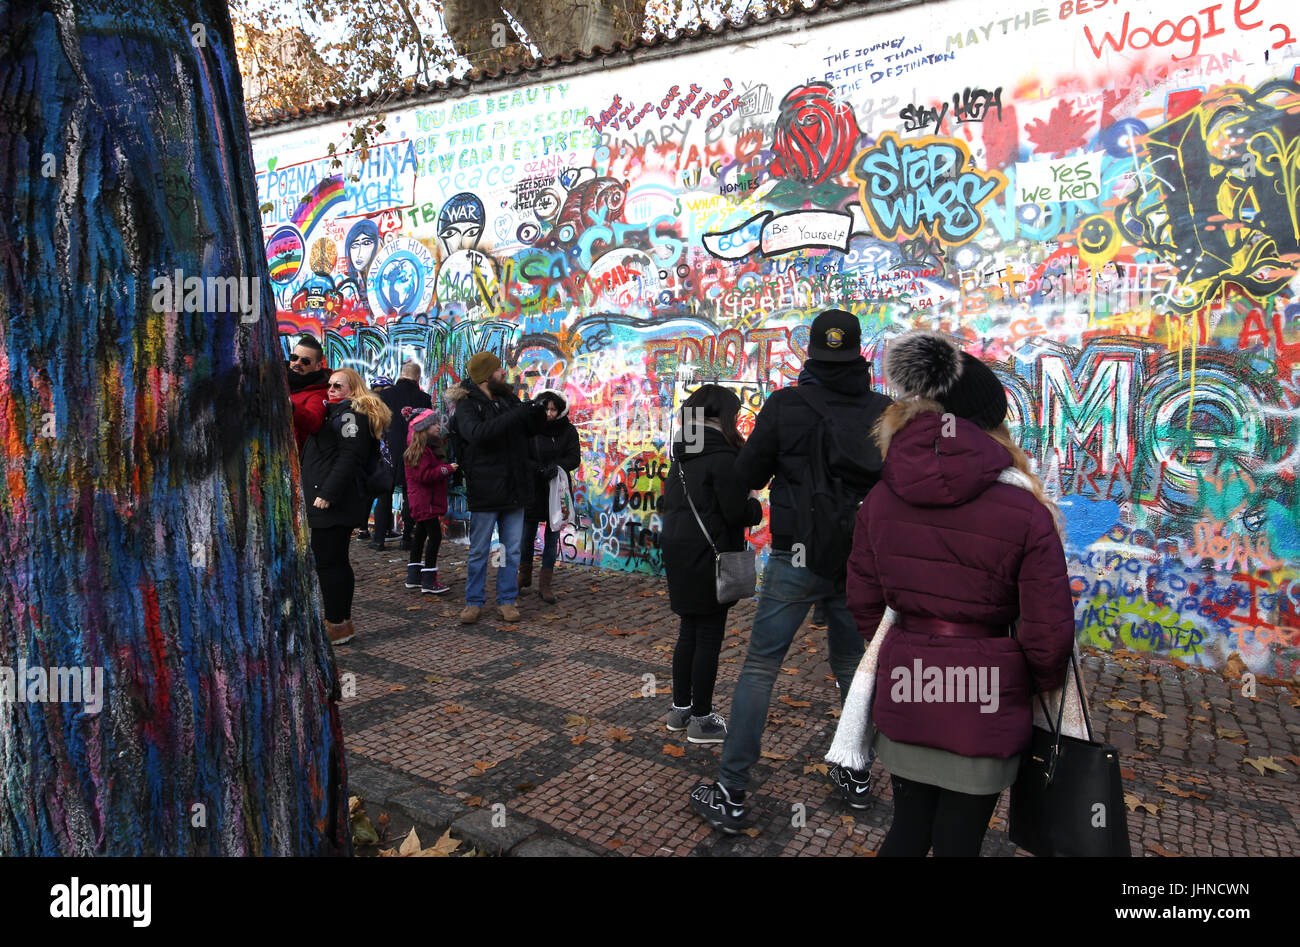 The john lennon wall is graffiti filled wall in prague the czech the john lennon wall is graffiti filled wall in prague the czech republic the wall represents a symbol of global ideals such as love and peace buycottarizona